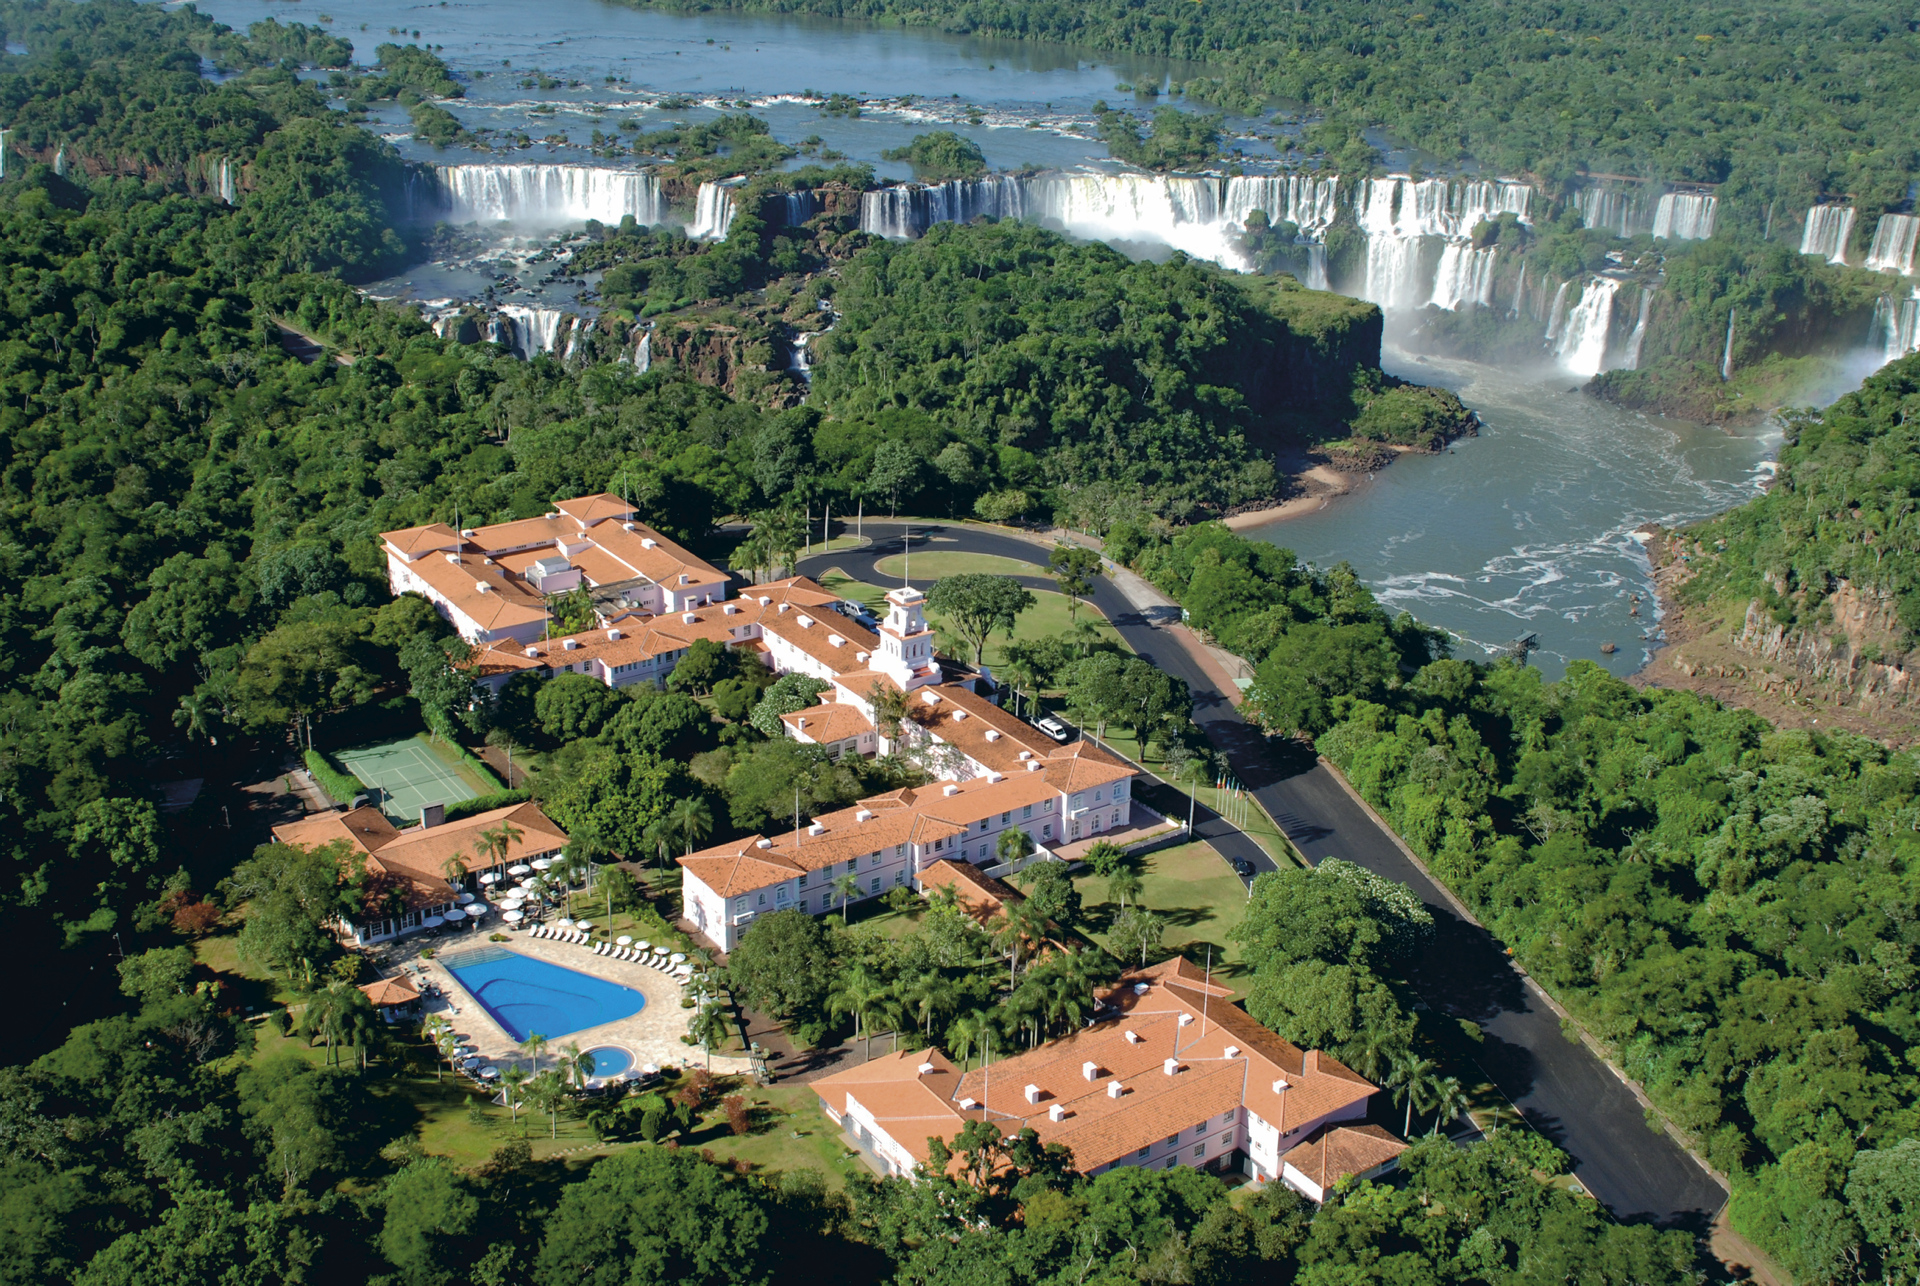 Hotel das Cataratas in Foz do Iguazu ©Hotel Das Cataratas